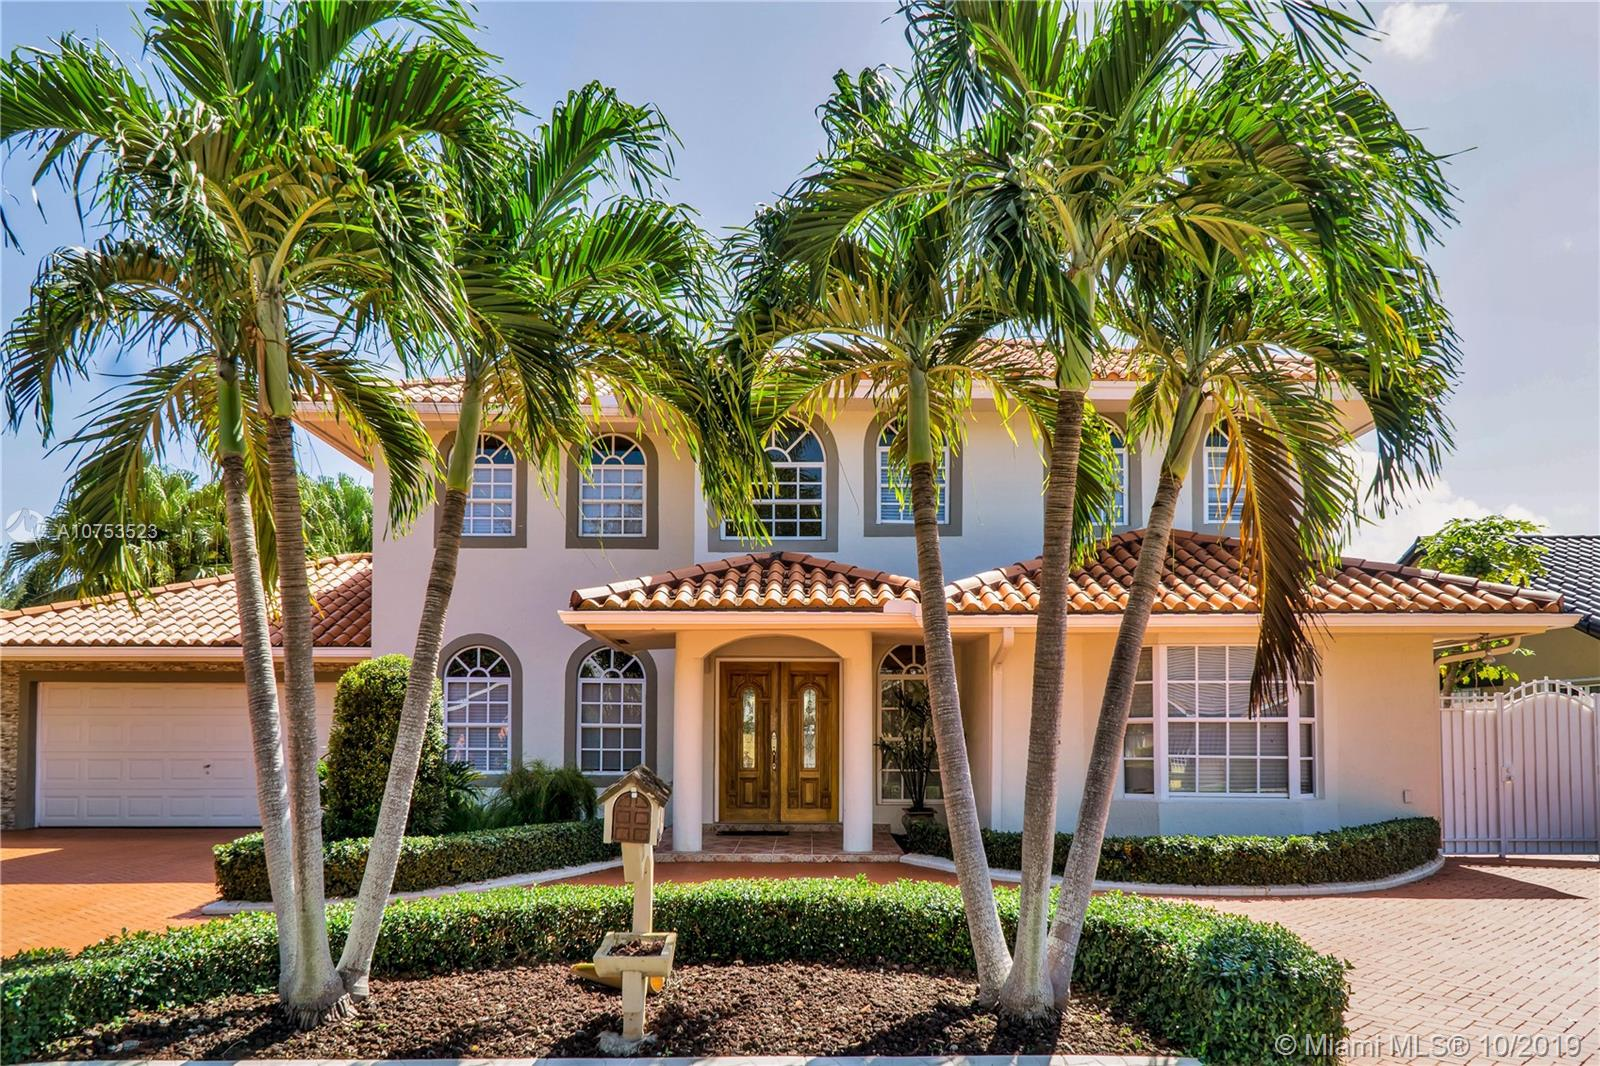 8850 SW 57th St, Kendall, Florida